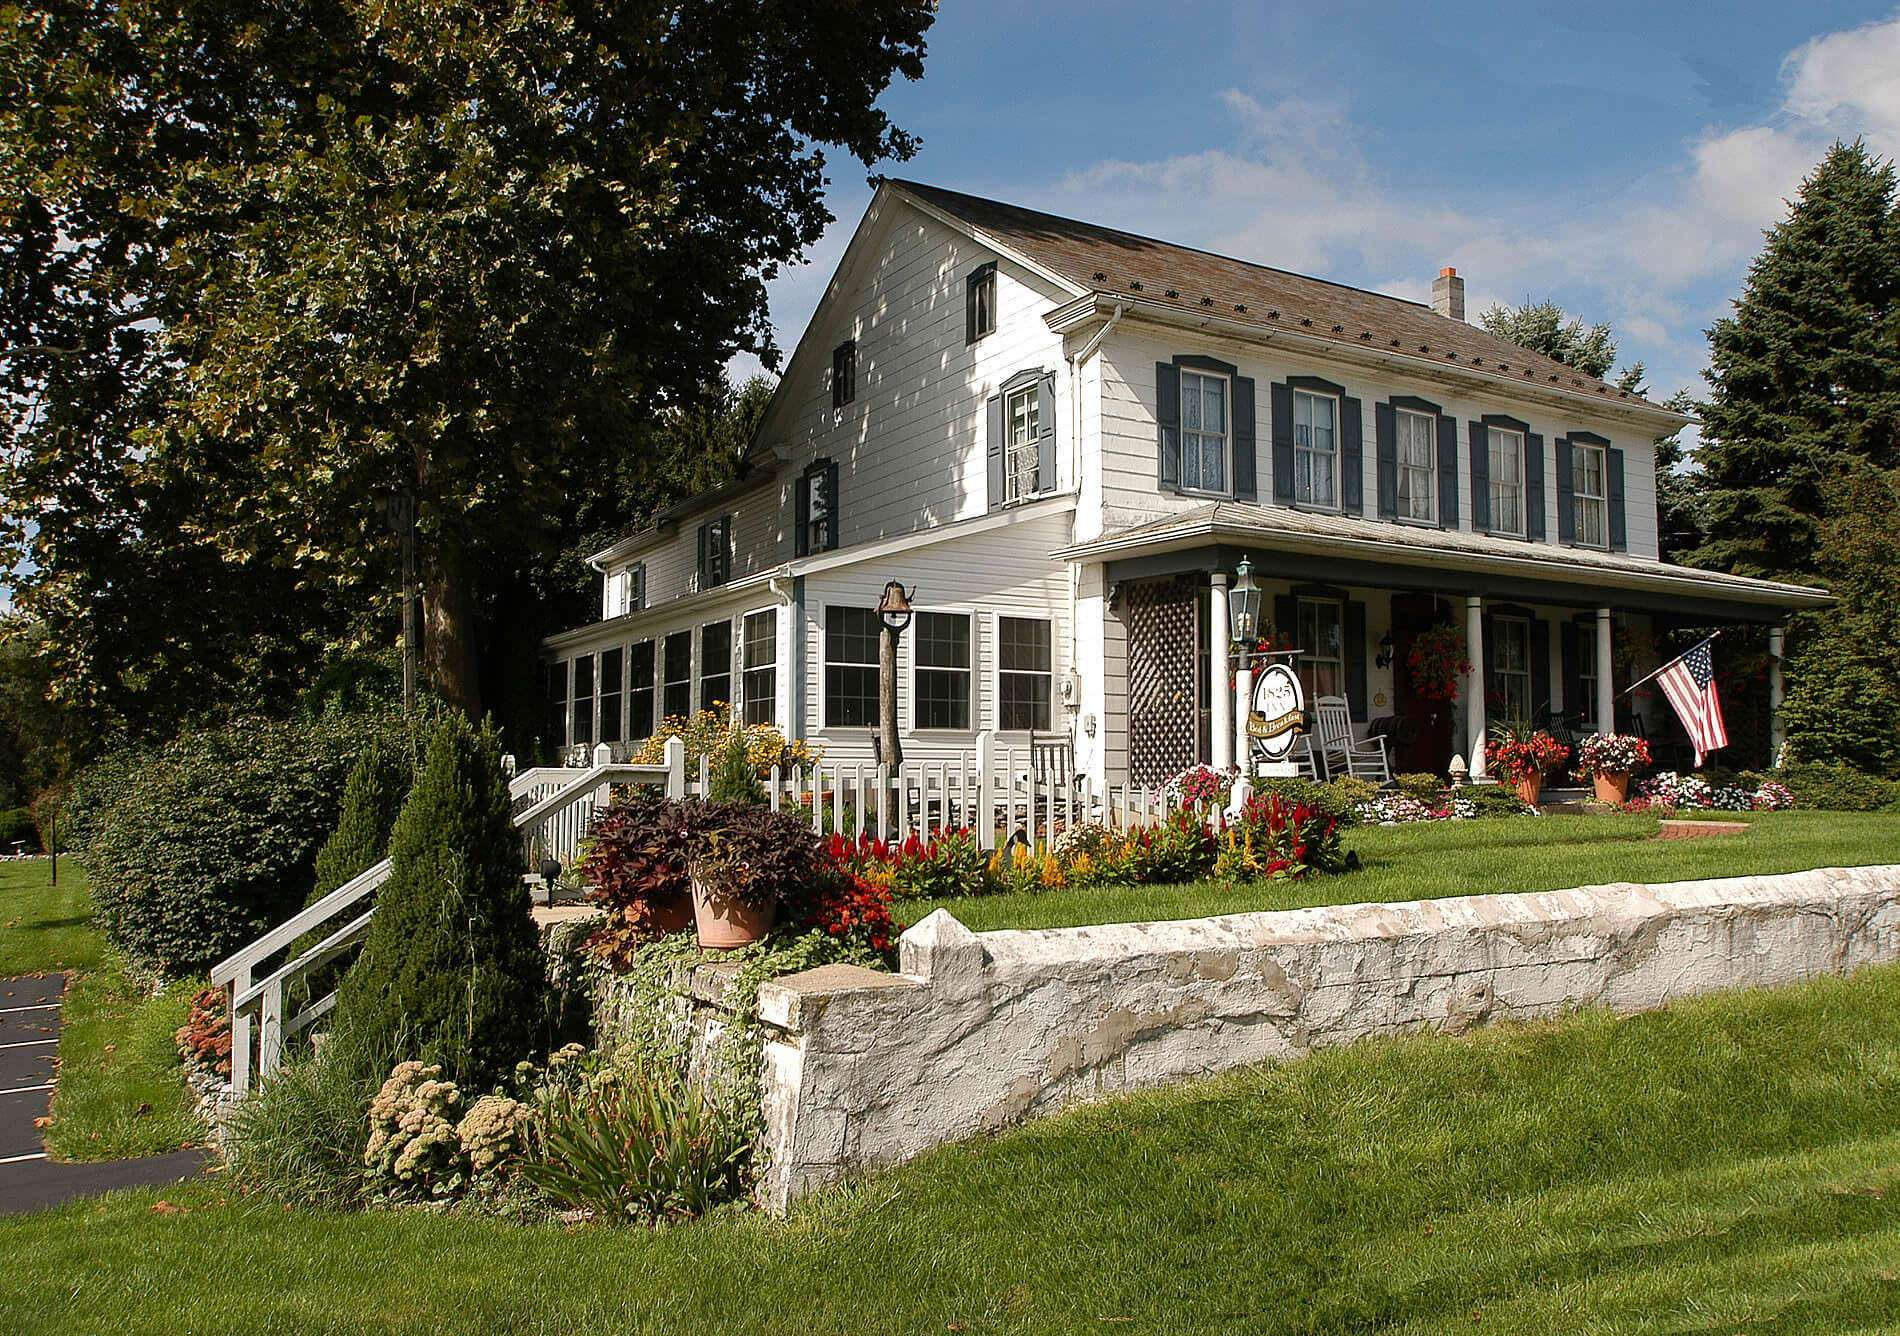 1825 inn bed and breakfast near hershey pa for Bed and breakfast area riservata